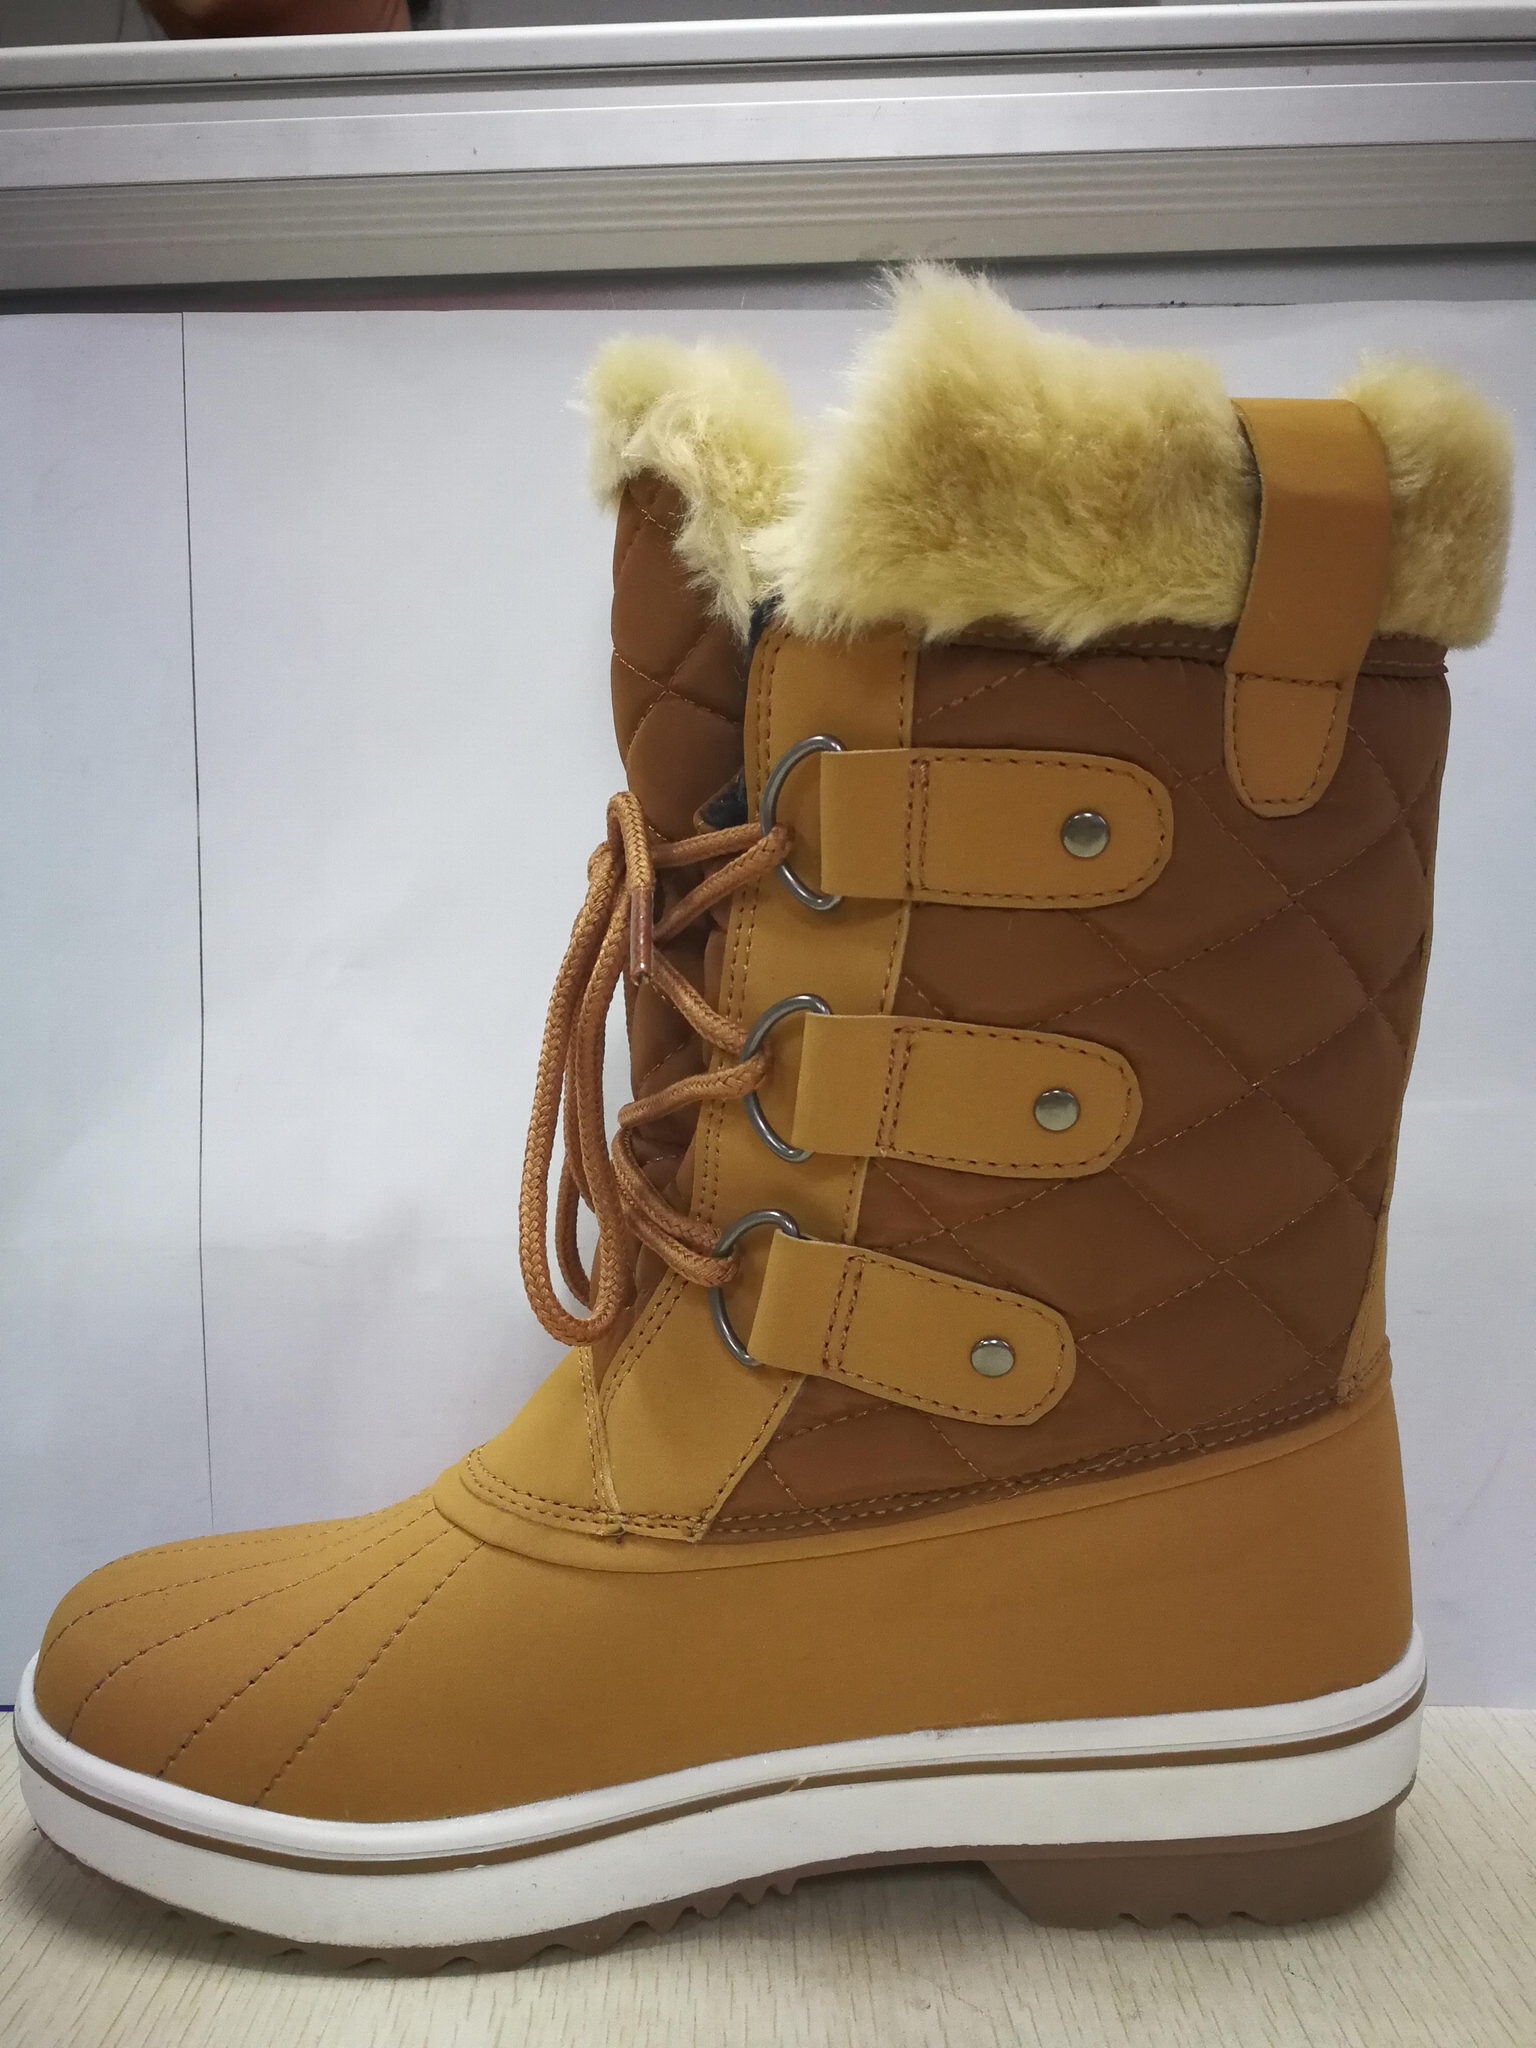 SNOW BOOTS 8